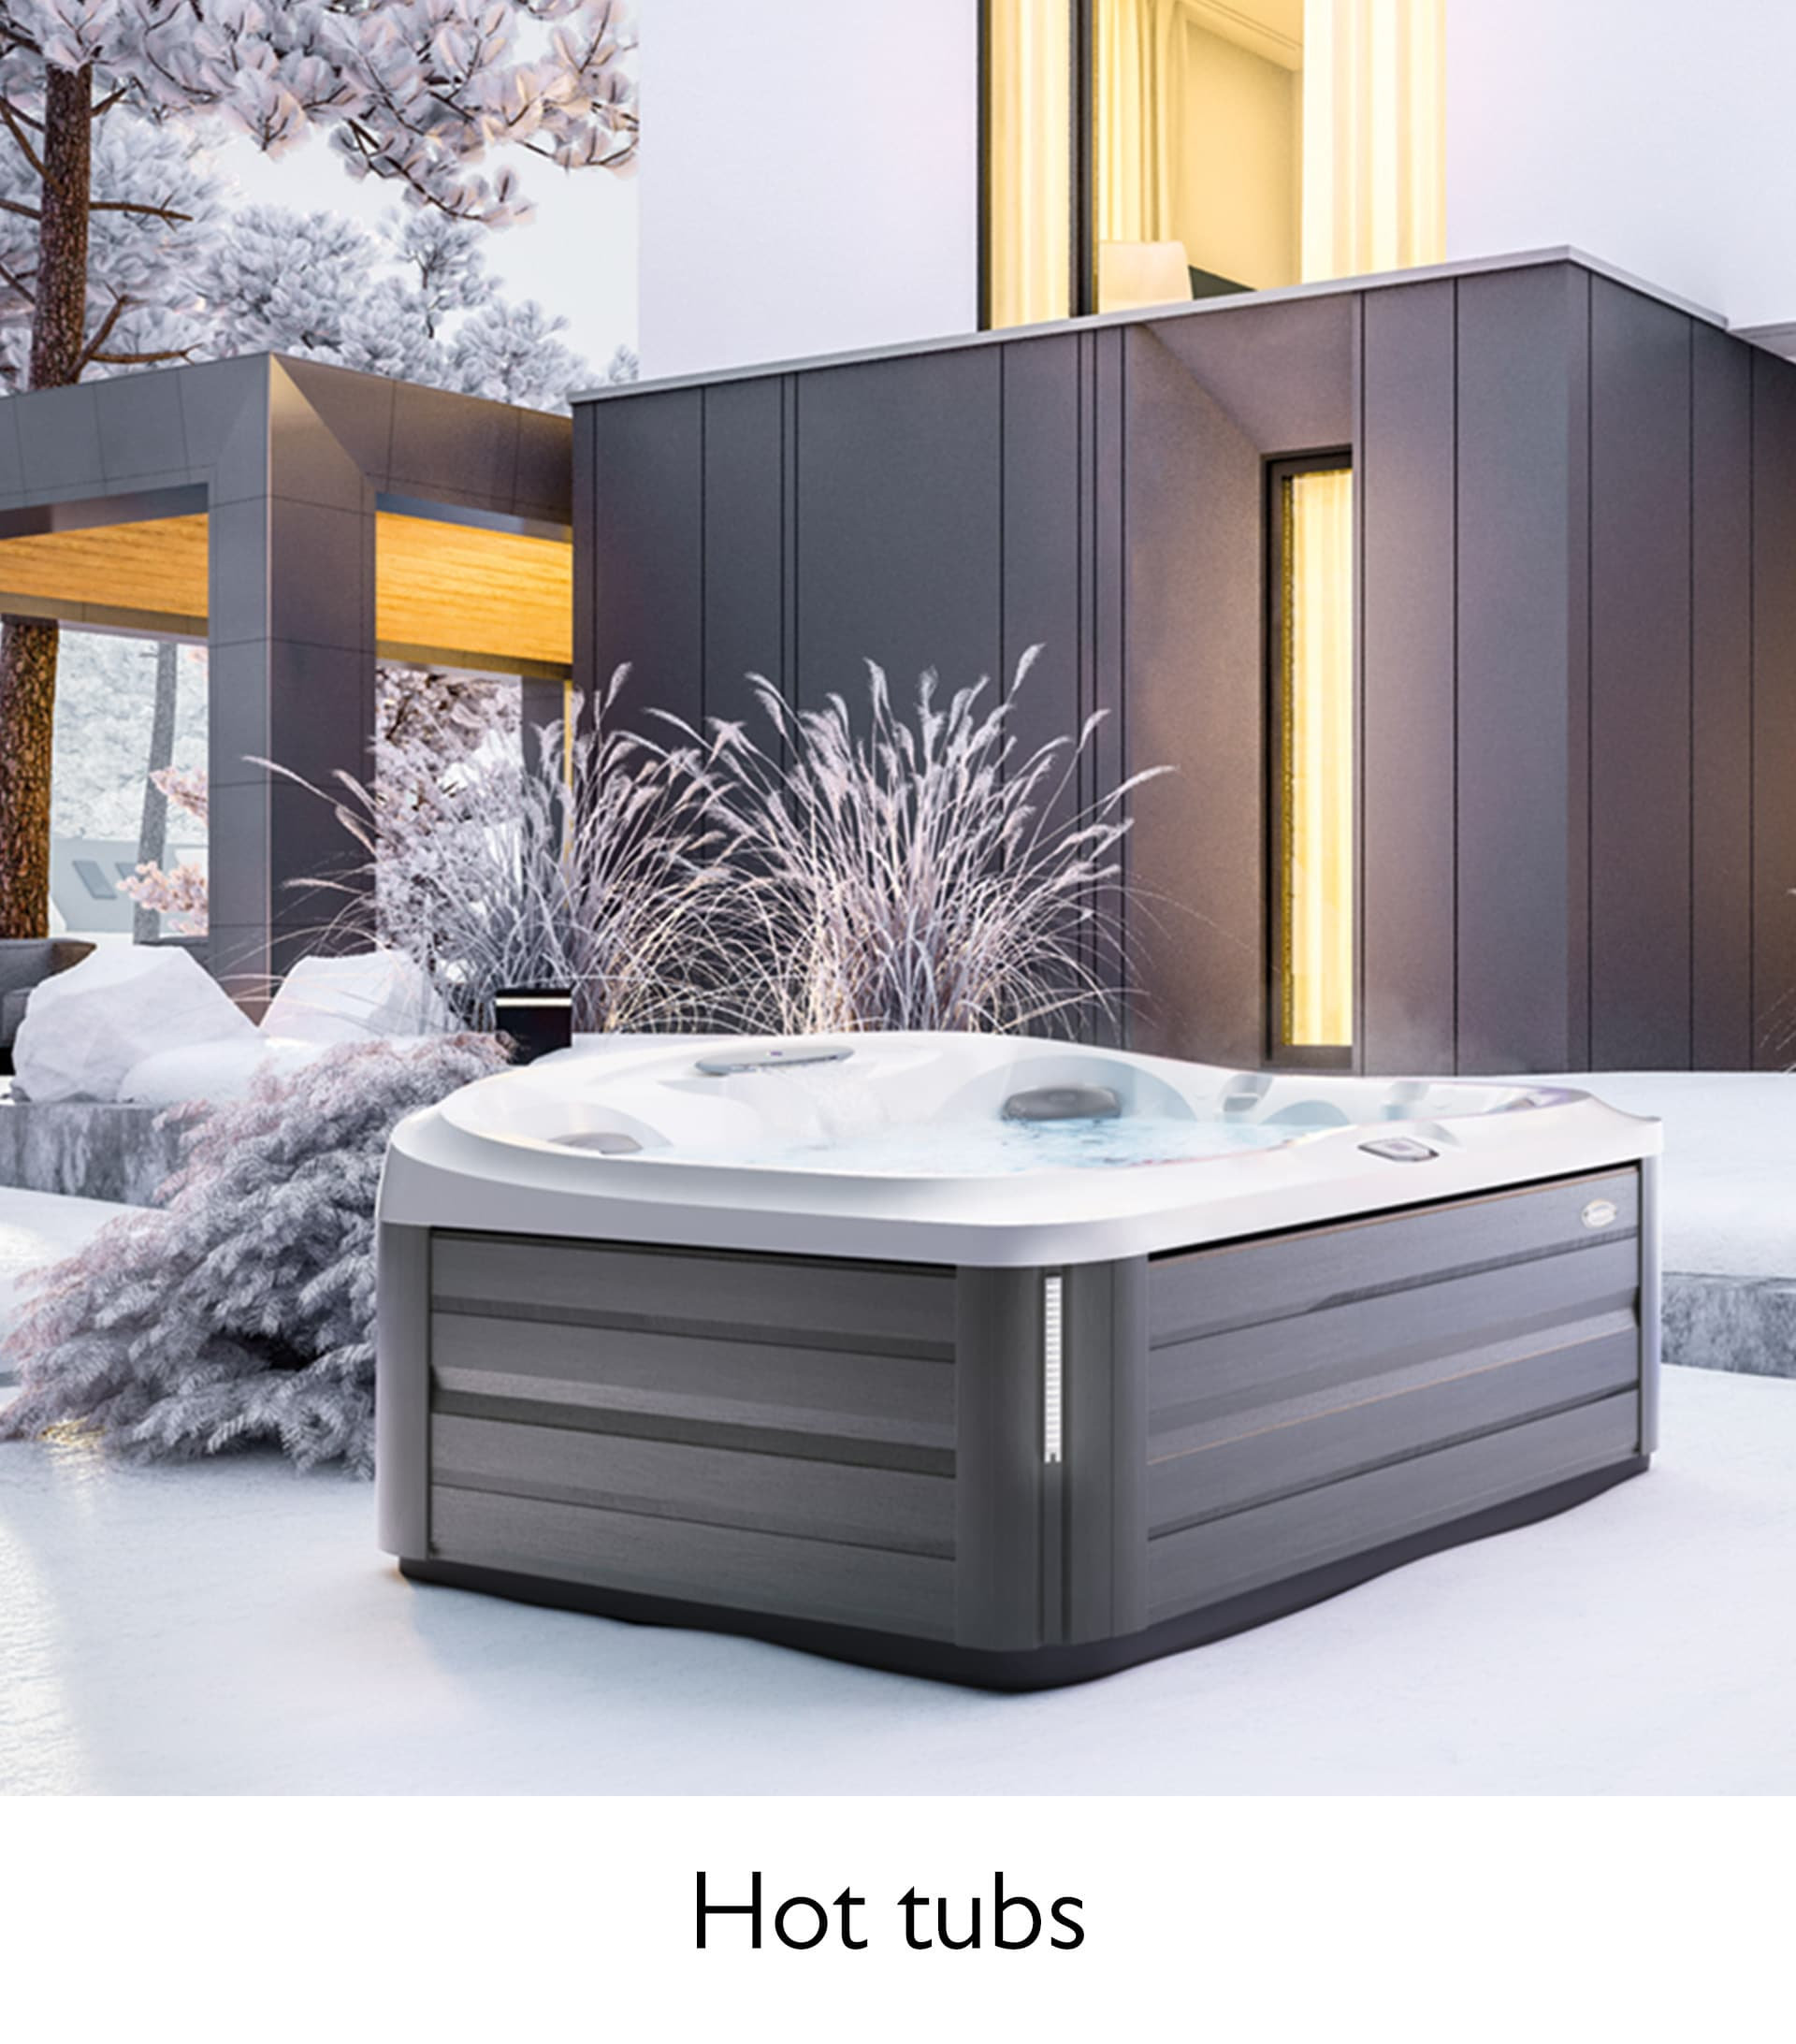 Hot tubs Jacuzzi